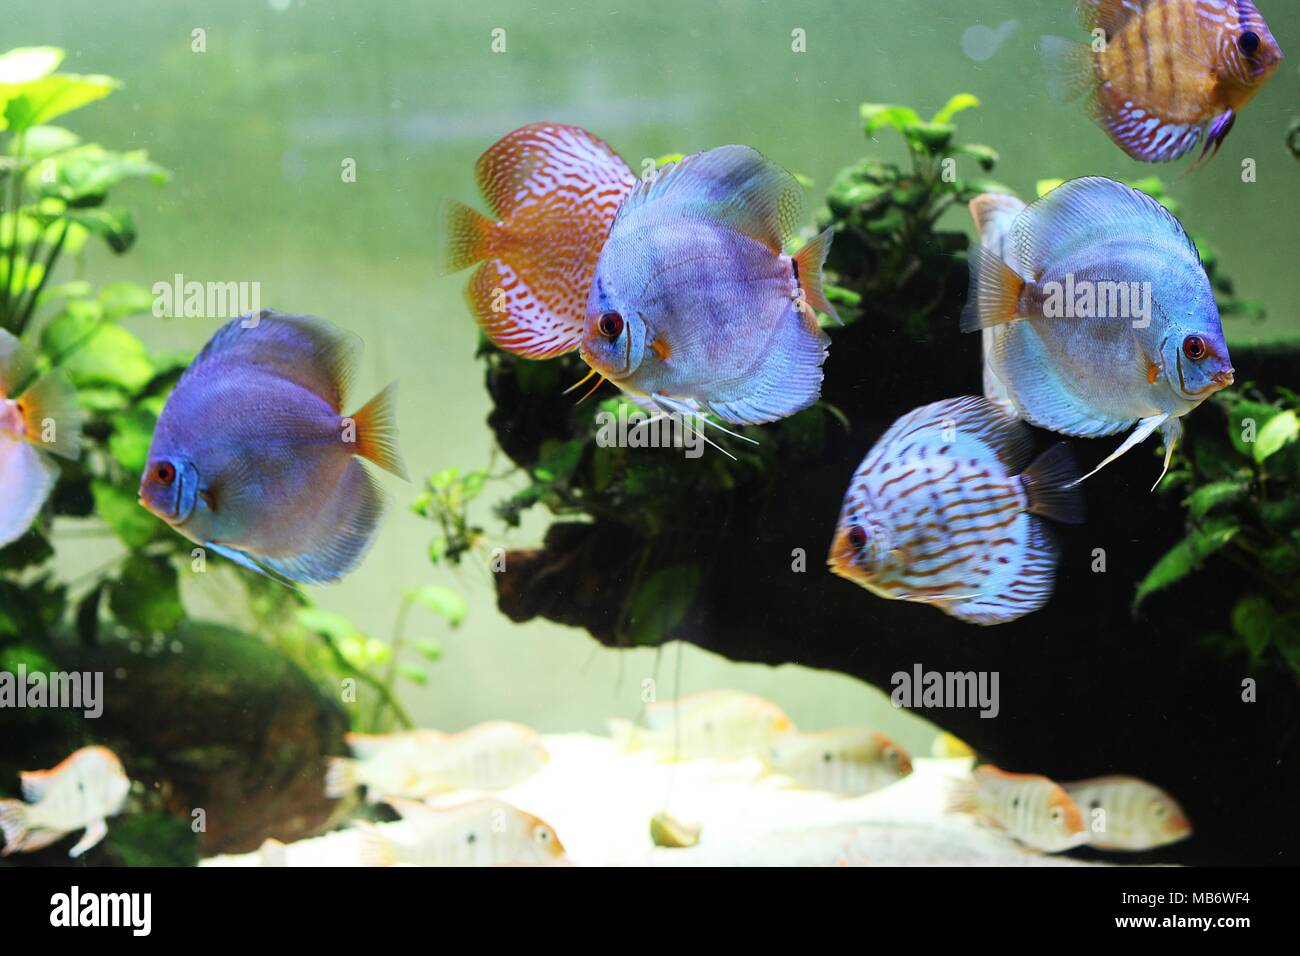 Colorful Fish Aquarium Stock Photos & Colorful Fish Aquarium Stock ...